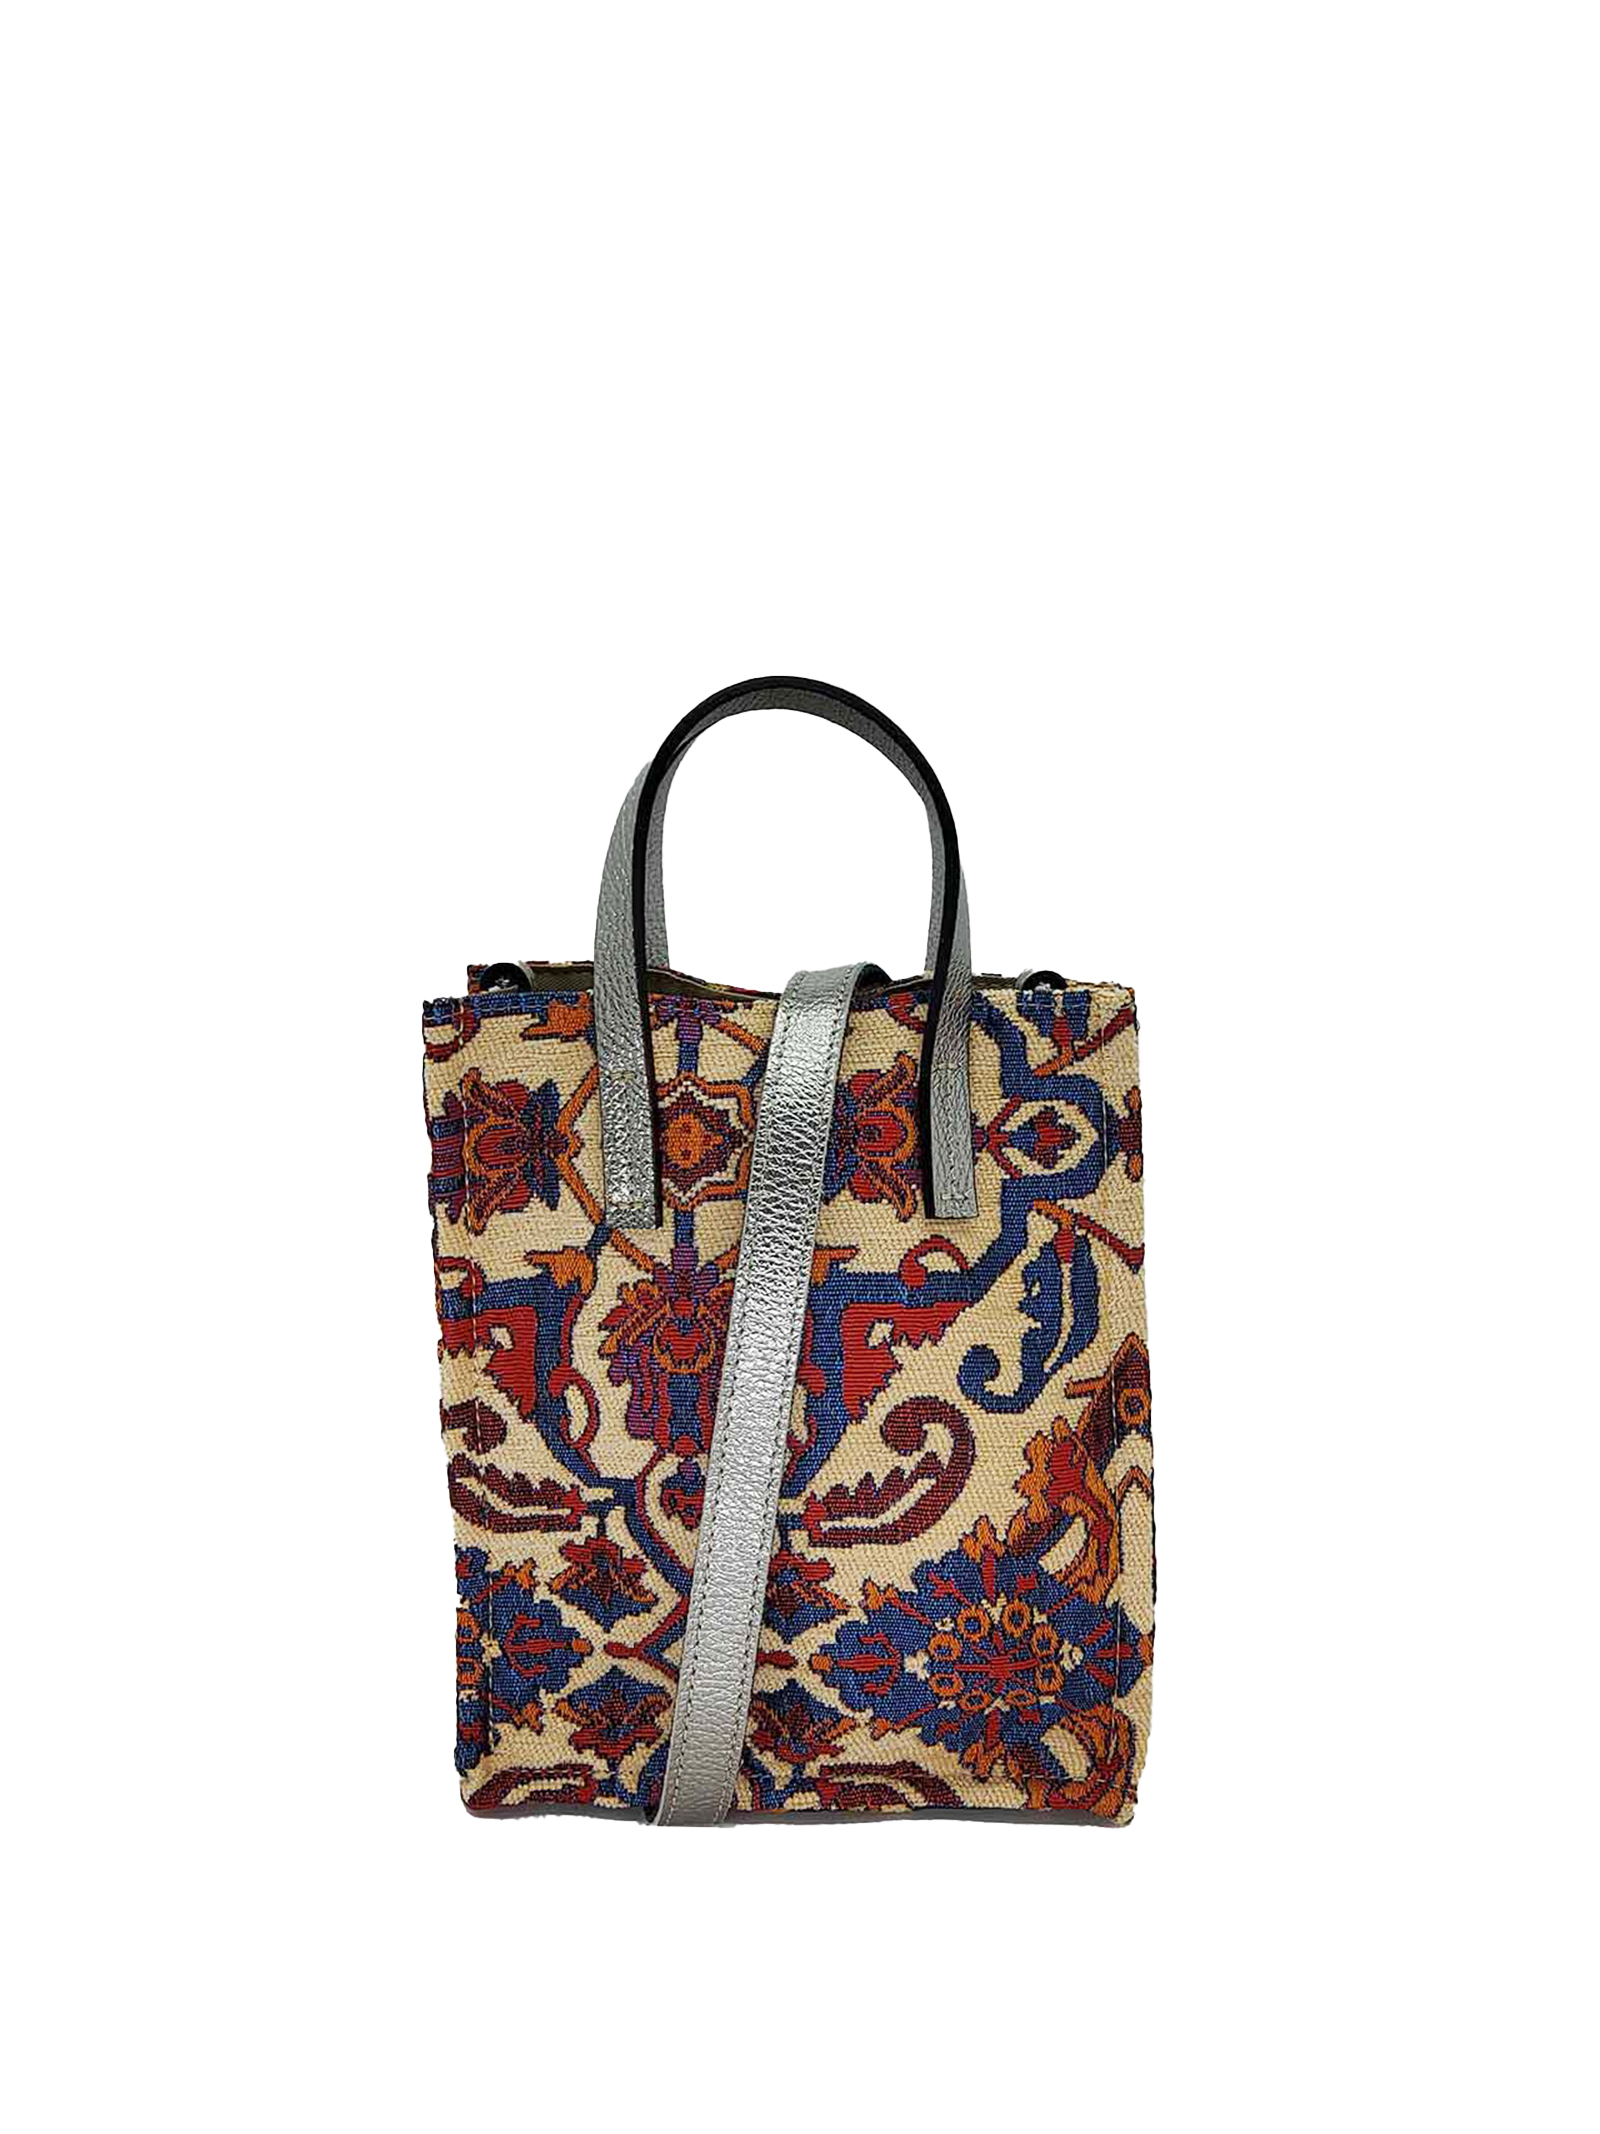 Women's Small Shoulder Bags in Cream Jacquard Patterned Fabric with Double Handle and Removable Shoulder Strap Kassiopea | Bags and backpacks | MINI UMIL16